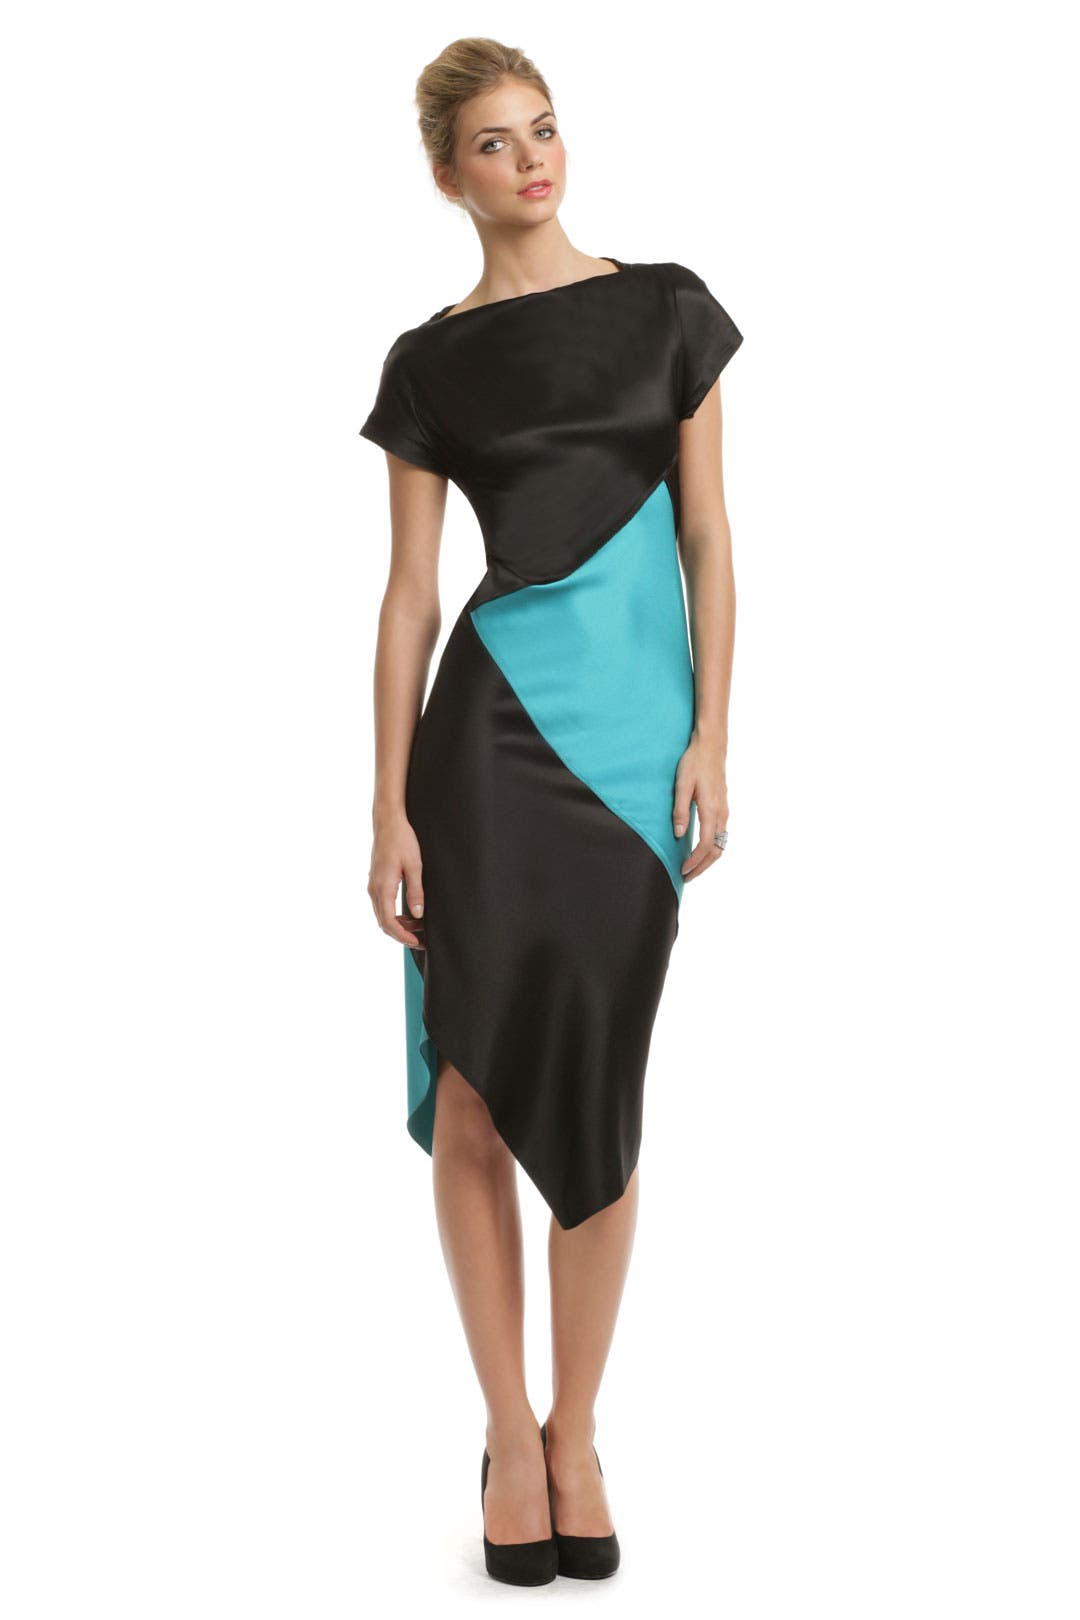 Picasso Colorblock Dress by Proenza Schouler